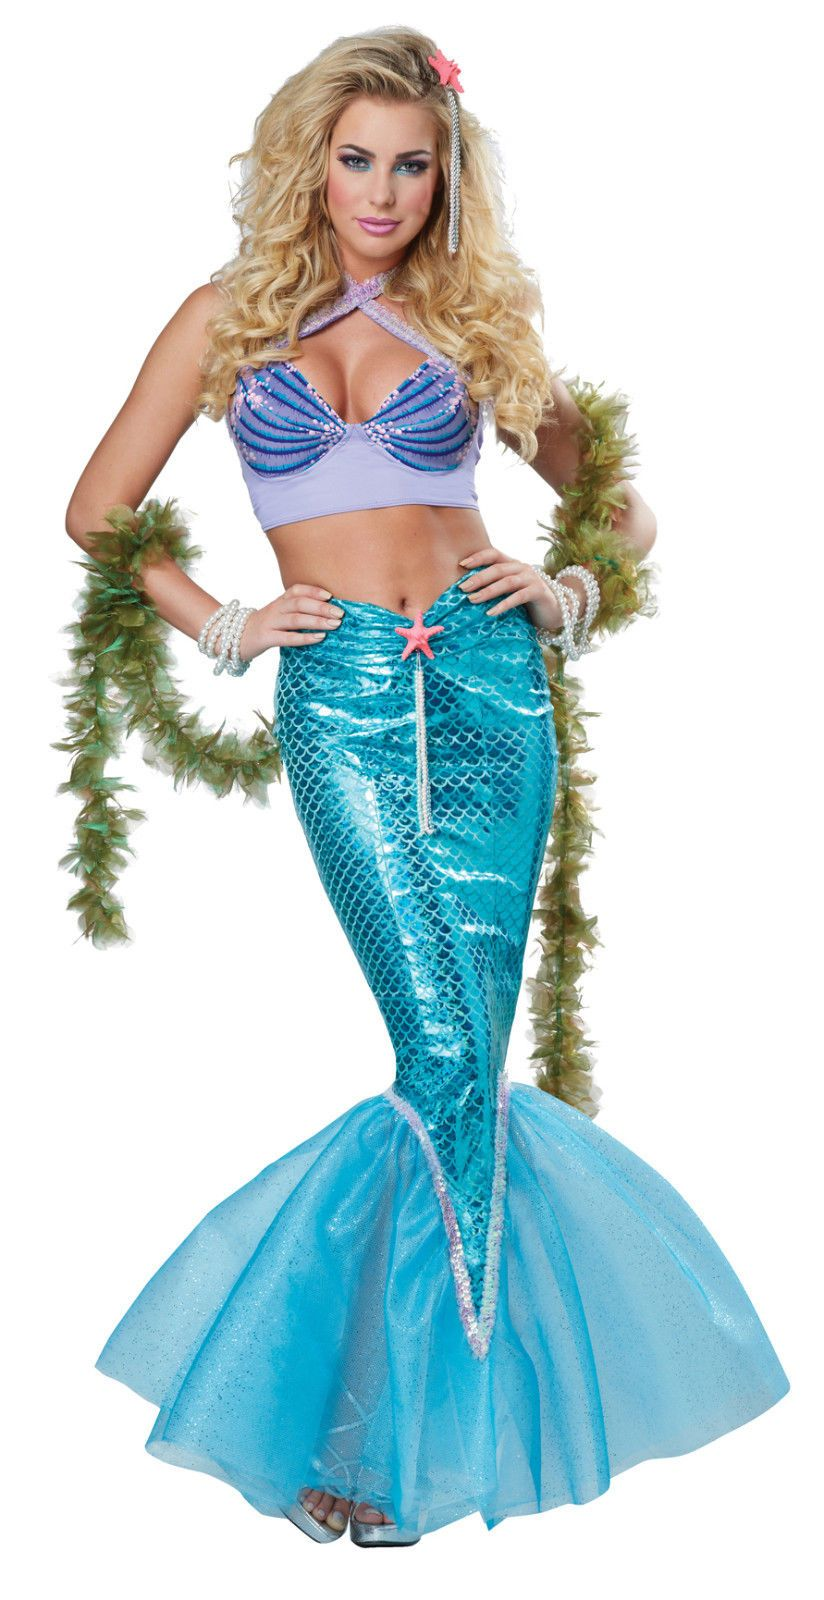 Details about Sexy Disney Deluxe Ariel Mermaid Dress Outfit Adult ... c3cb2b8f035a